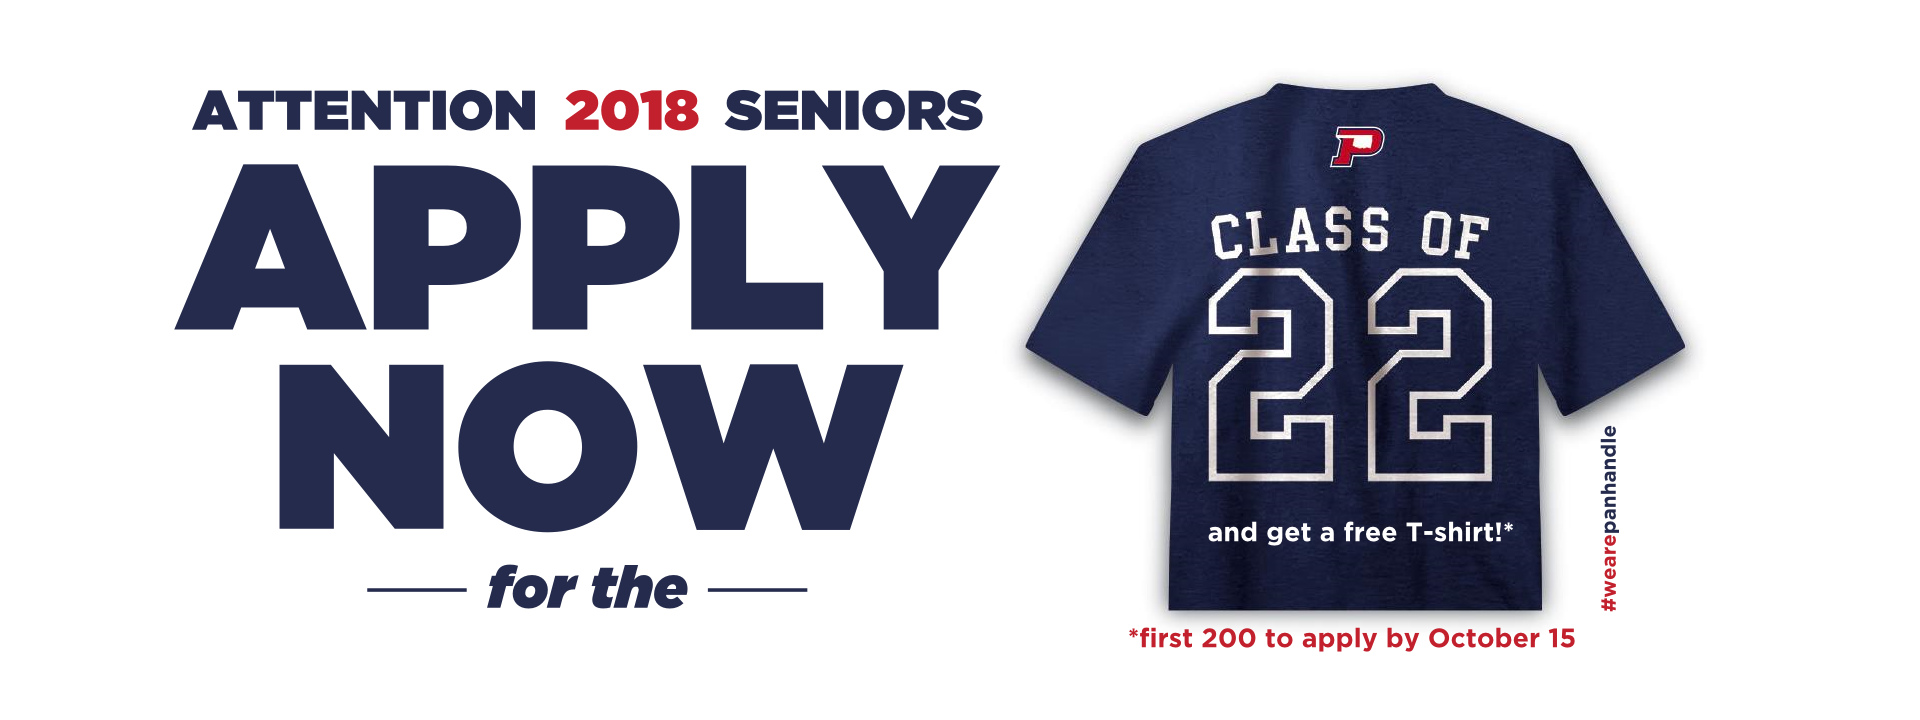 2018 Seniors - Apply Now for a free T-Shirt!